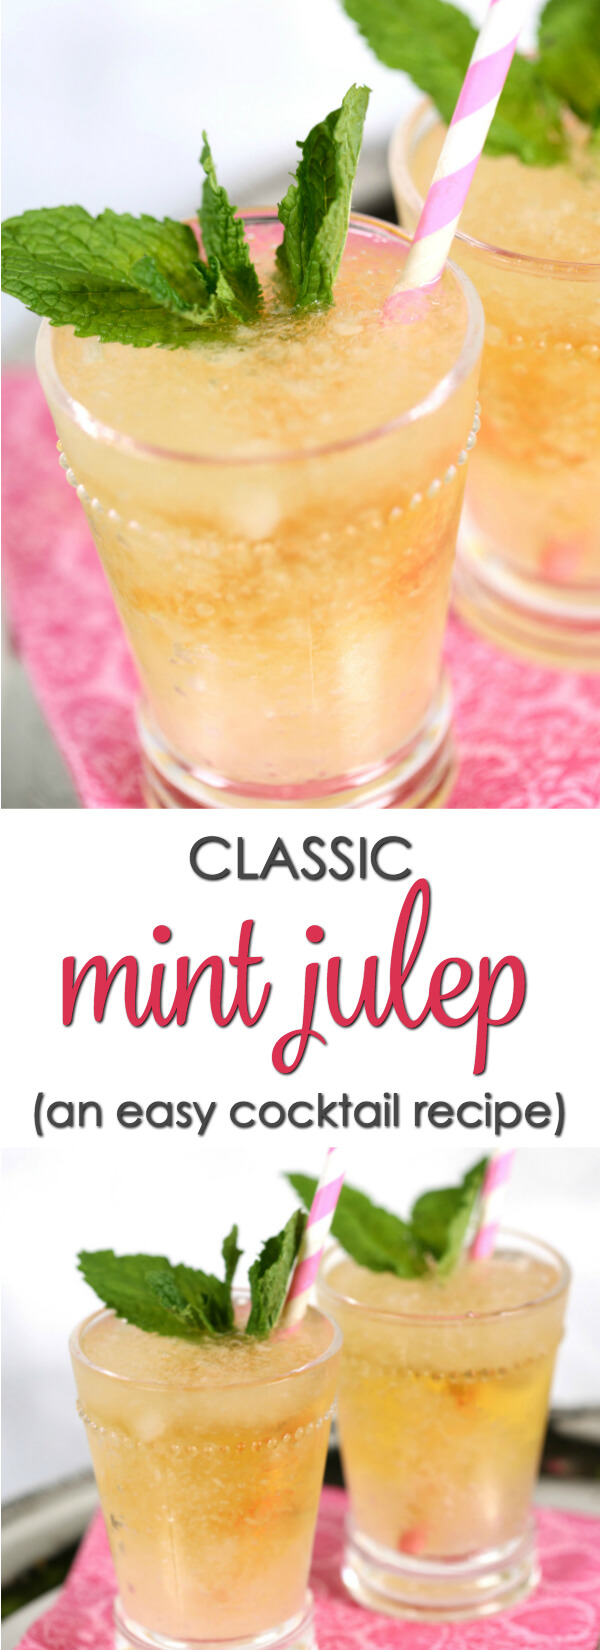 This Kentucky Derby is one of the top 10 bourbon cocktails.  It's incredibly easy to make (I'll even show you a short cut) and is the perfect cocktail for watching the Kentucky Derby.  You can easily make Mint Julep with only a few simple ingredients and it only take a few minutes.  #KentuckyDerby #Cocktail #mint #bourbon #easycocktailrecipe #ItIsaKeeper #recipe